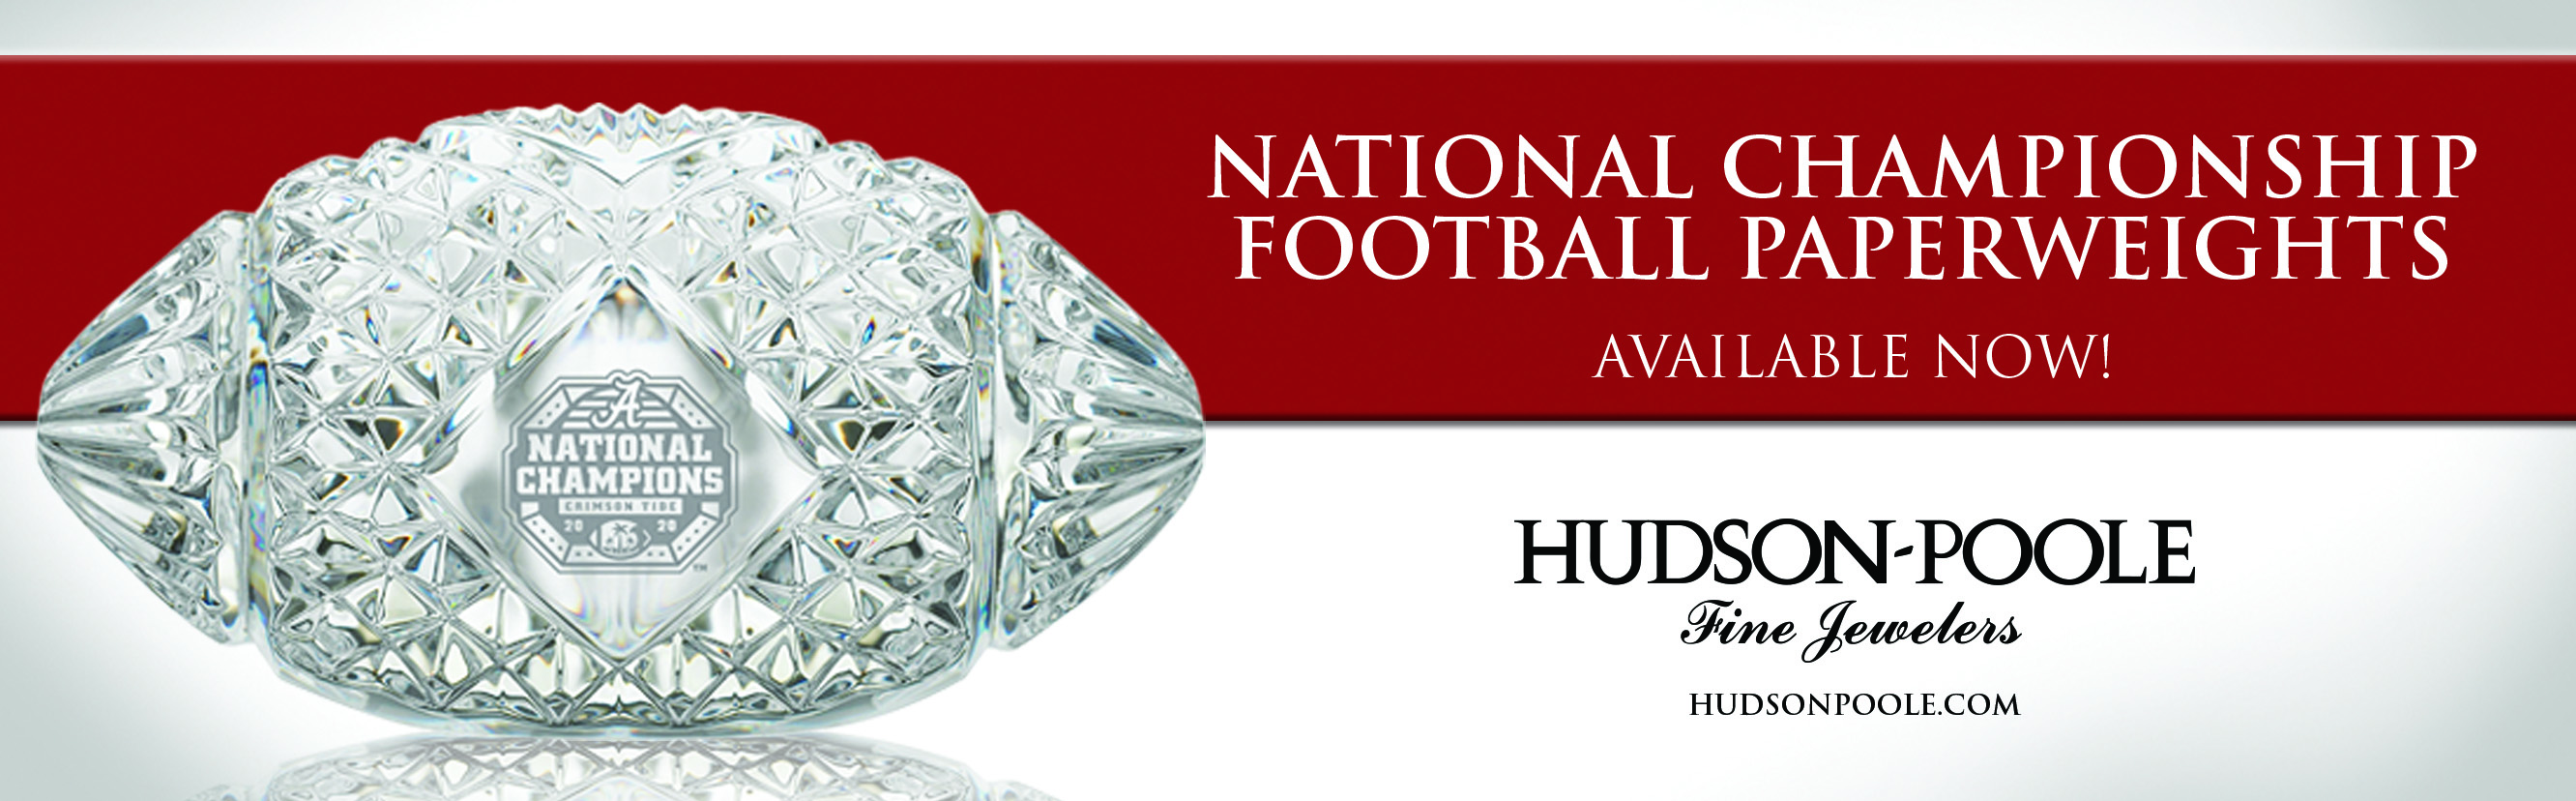 National Championship Football